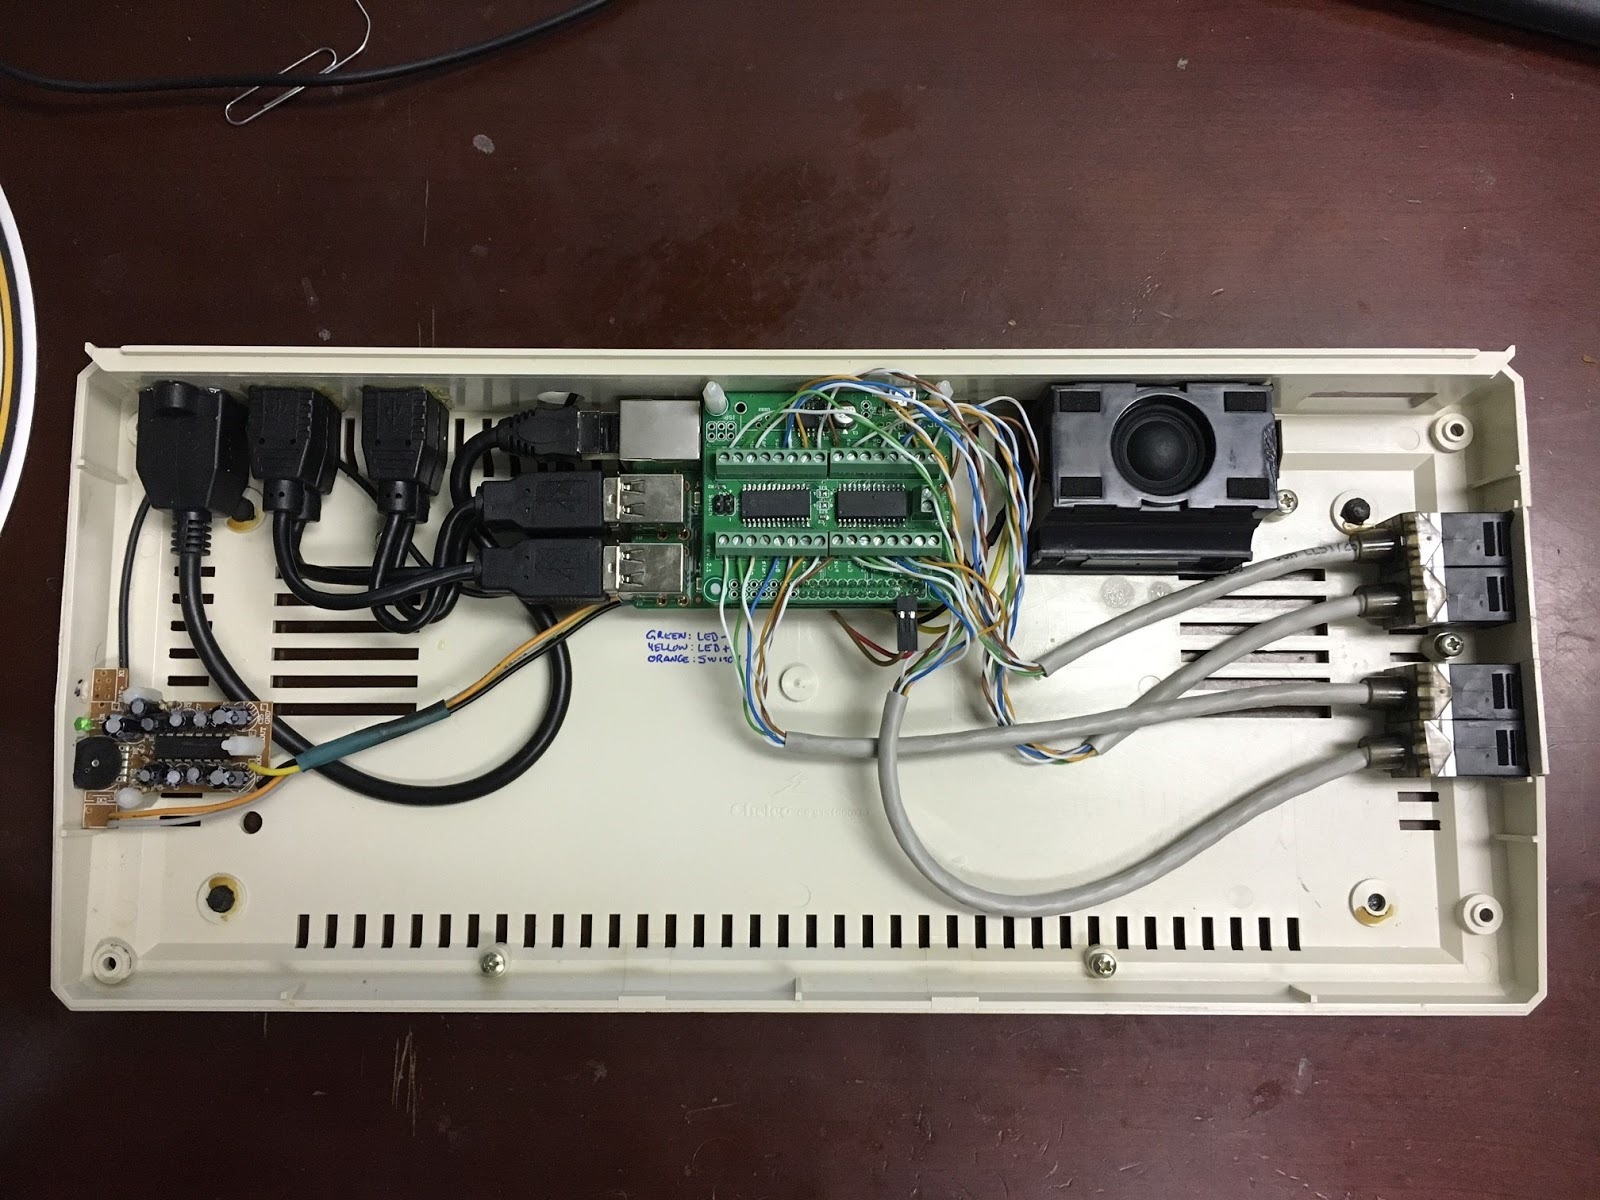 Atari 600xl To Raspberry Pi Retro Gaming Mod Project 2017 Wiring Diagram I Decided Let My Boys Do Their First Soldering And Make Own Arcade Controllers Im Going Get Them Each A Briefcase Act As Lap